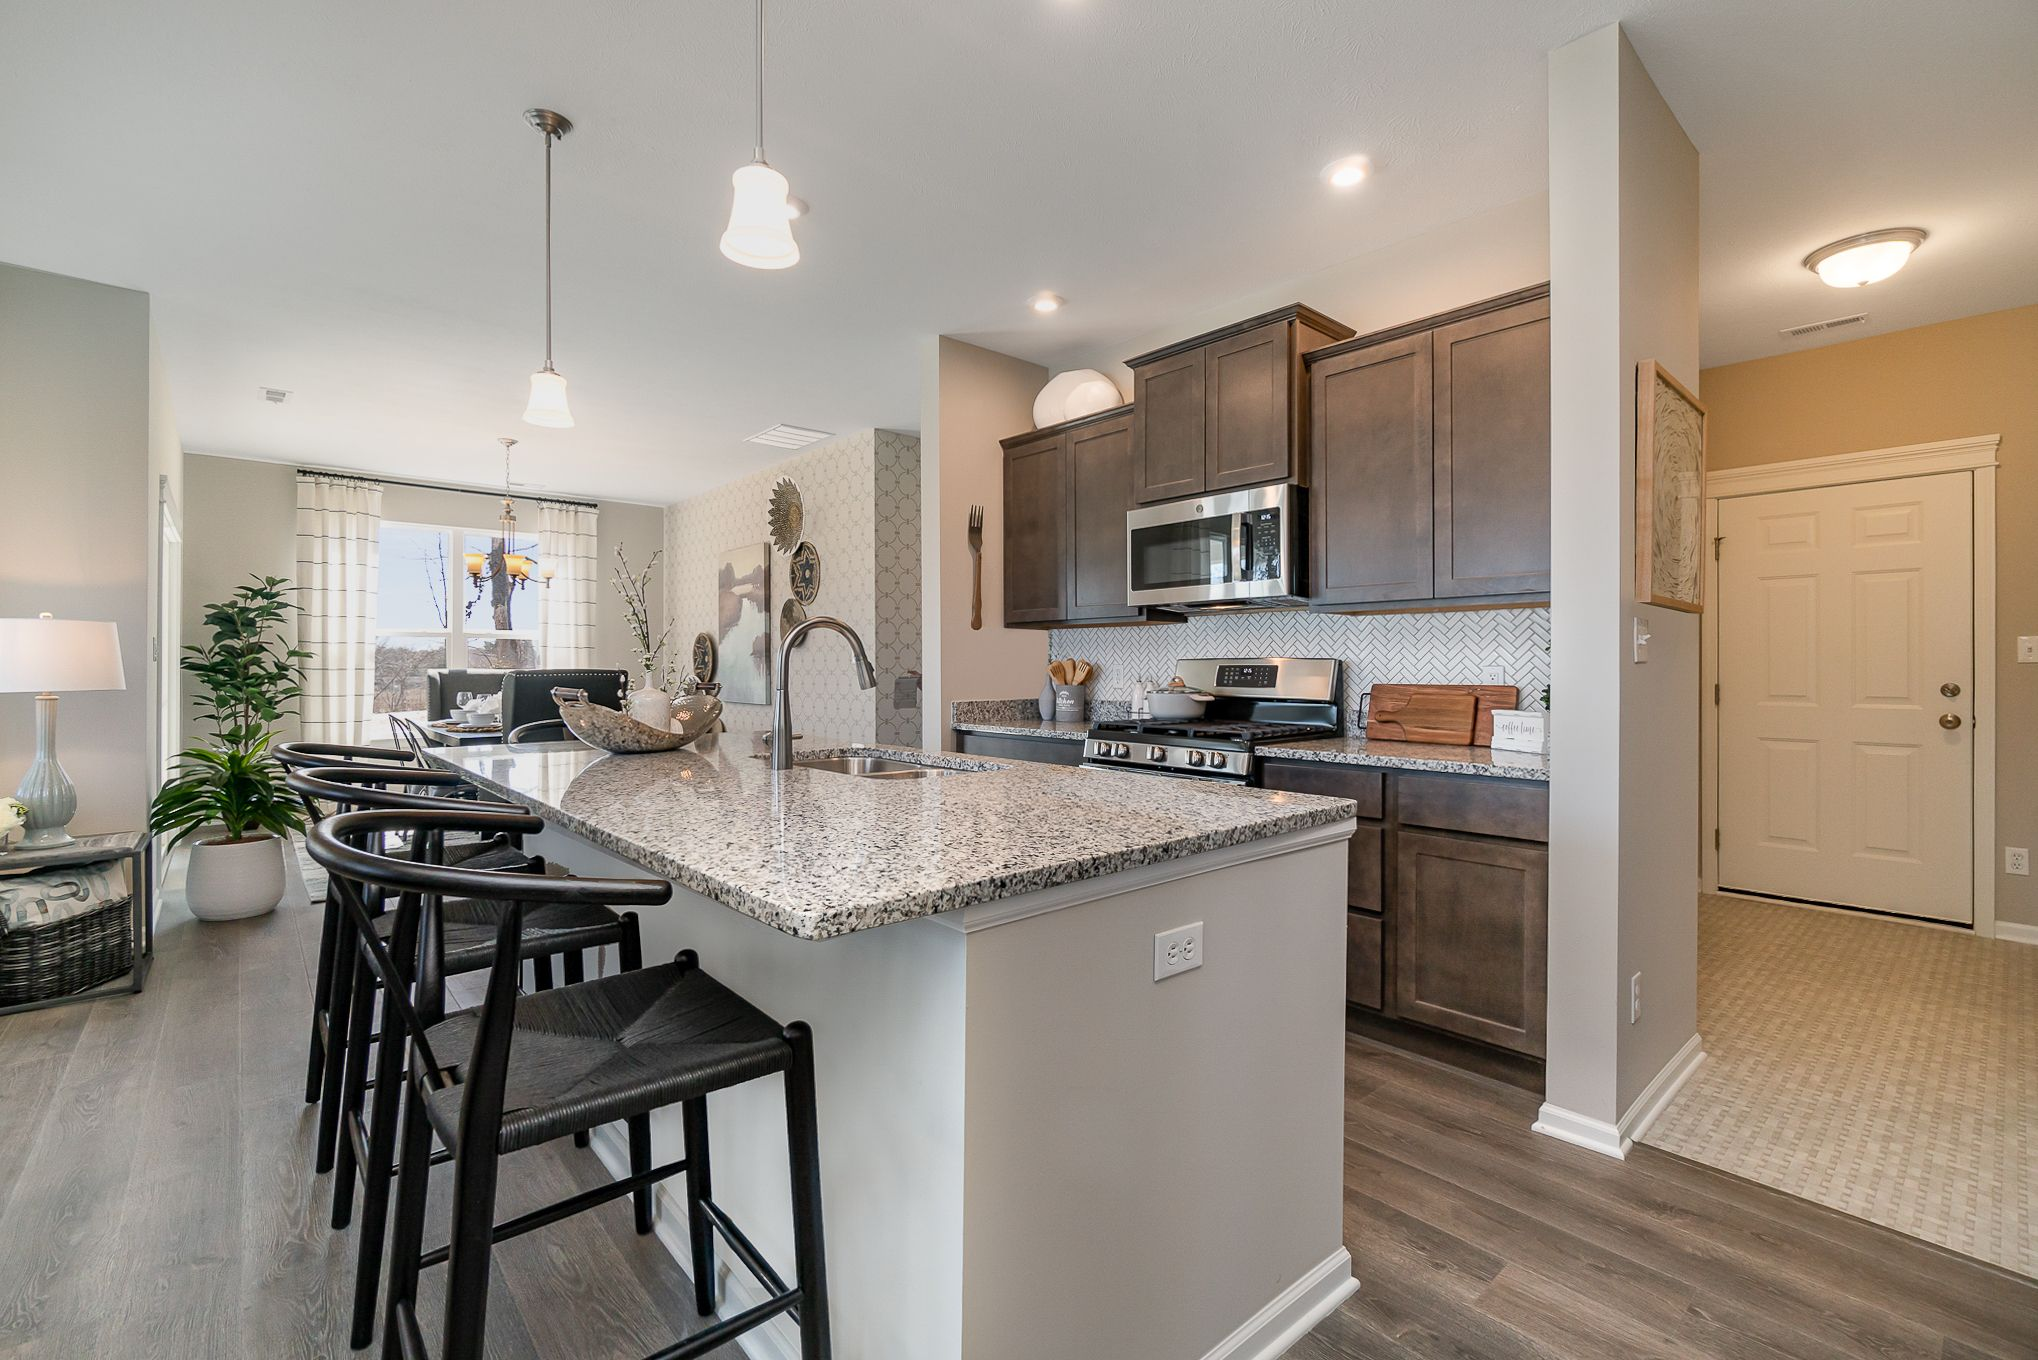 Kitchen featured in the Harmony By Olthof Homes in Indianapolis, IN